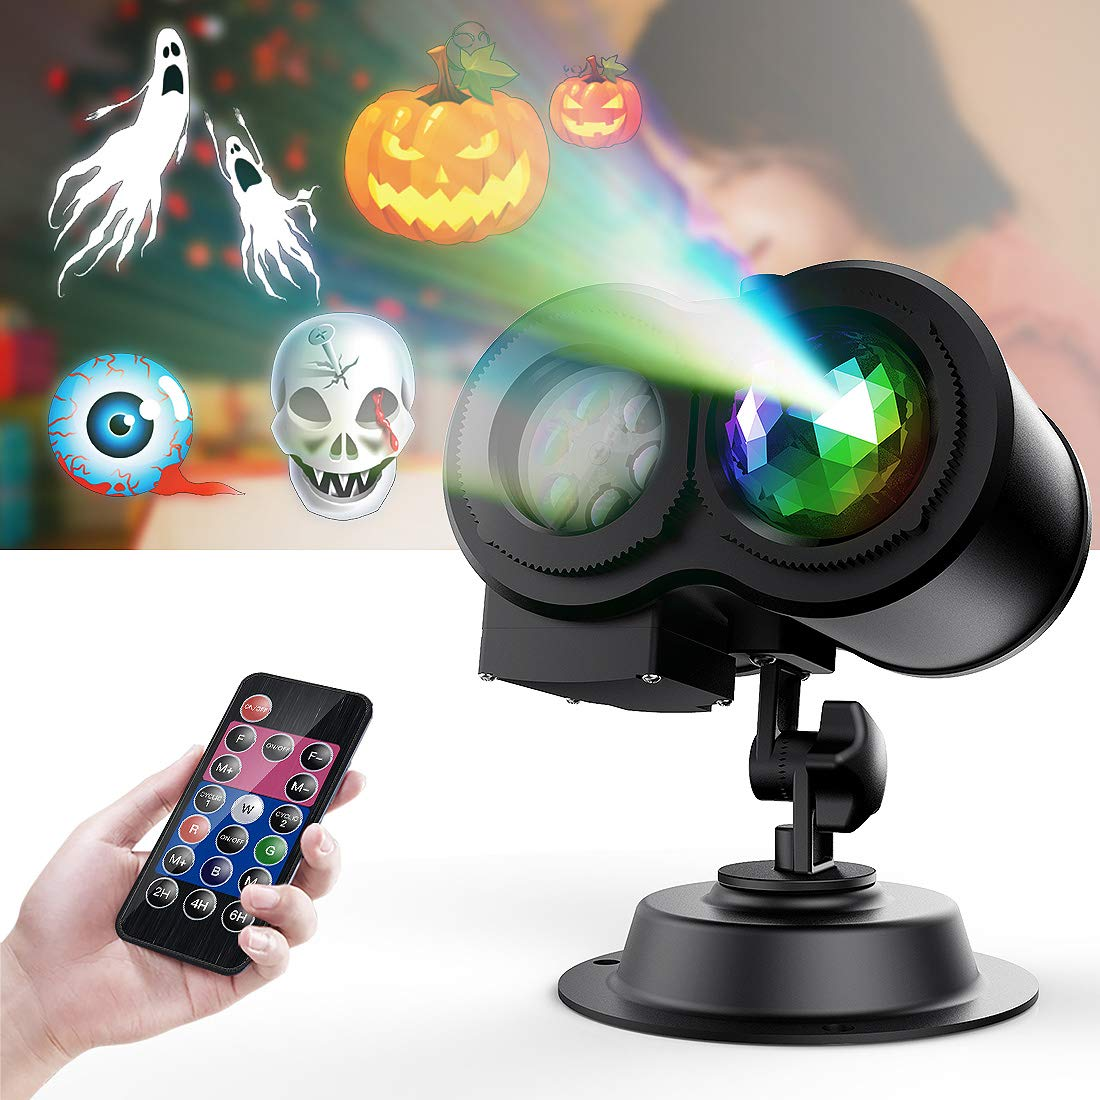 TAOCOCO Halloween Projector lights, Led Projection light, 2 in 1 Outdoor/Indoor Decoration Holiday lights for Halloween Decoration, Waterproof with 12 Slides Patterns Remote Controller